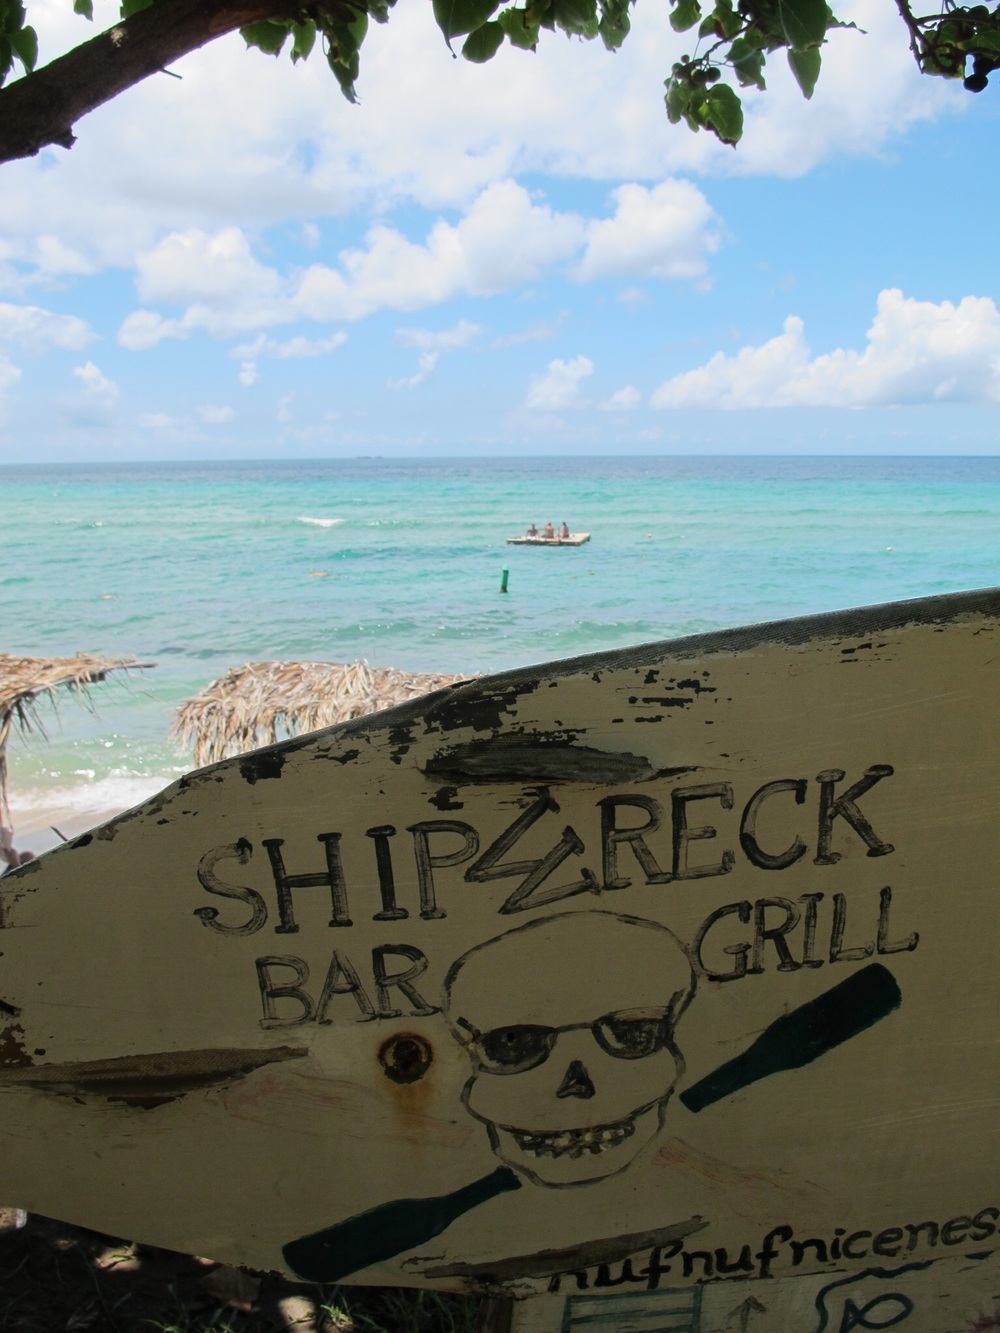 Shipwreck Bar & Grill, St. Kitts, Caribbean